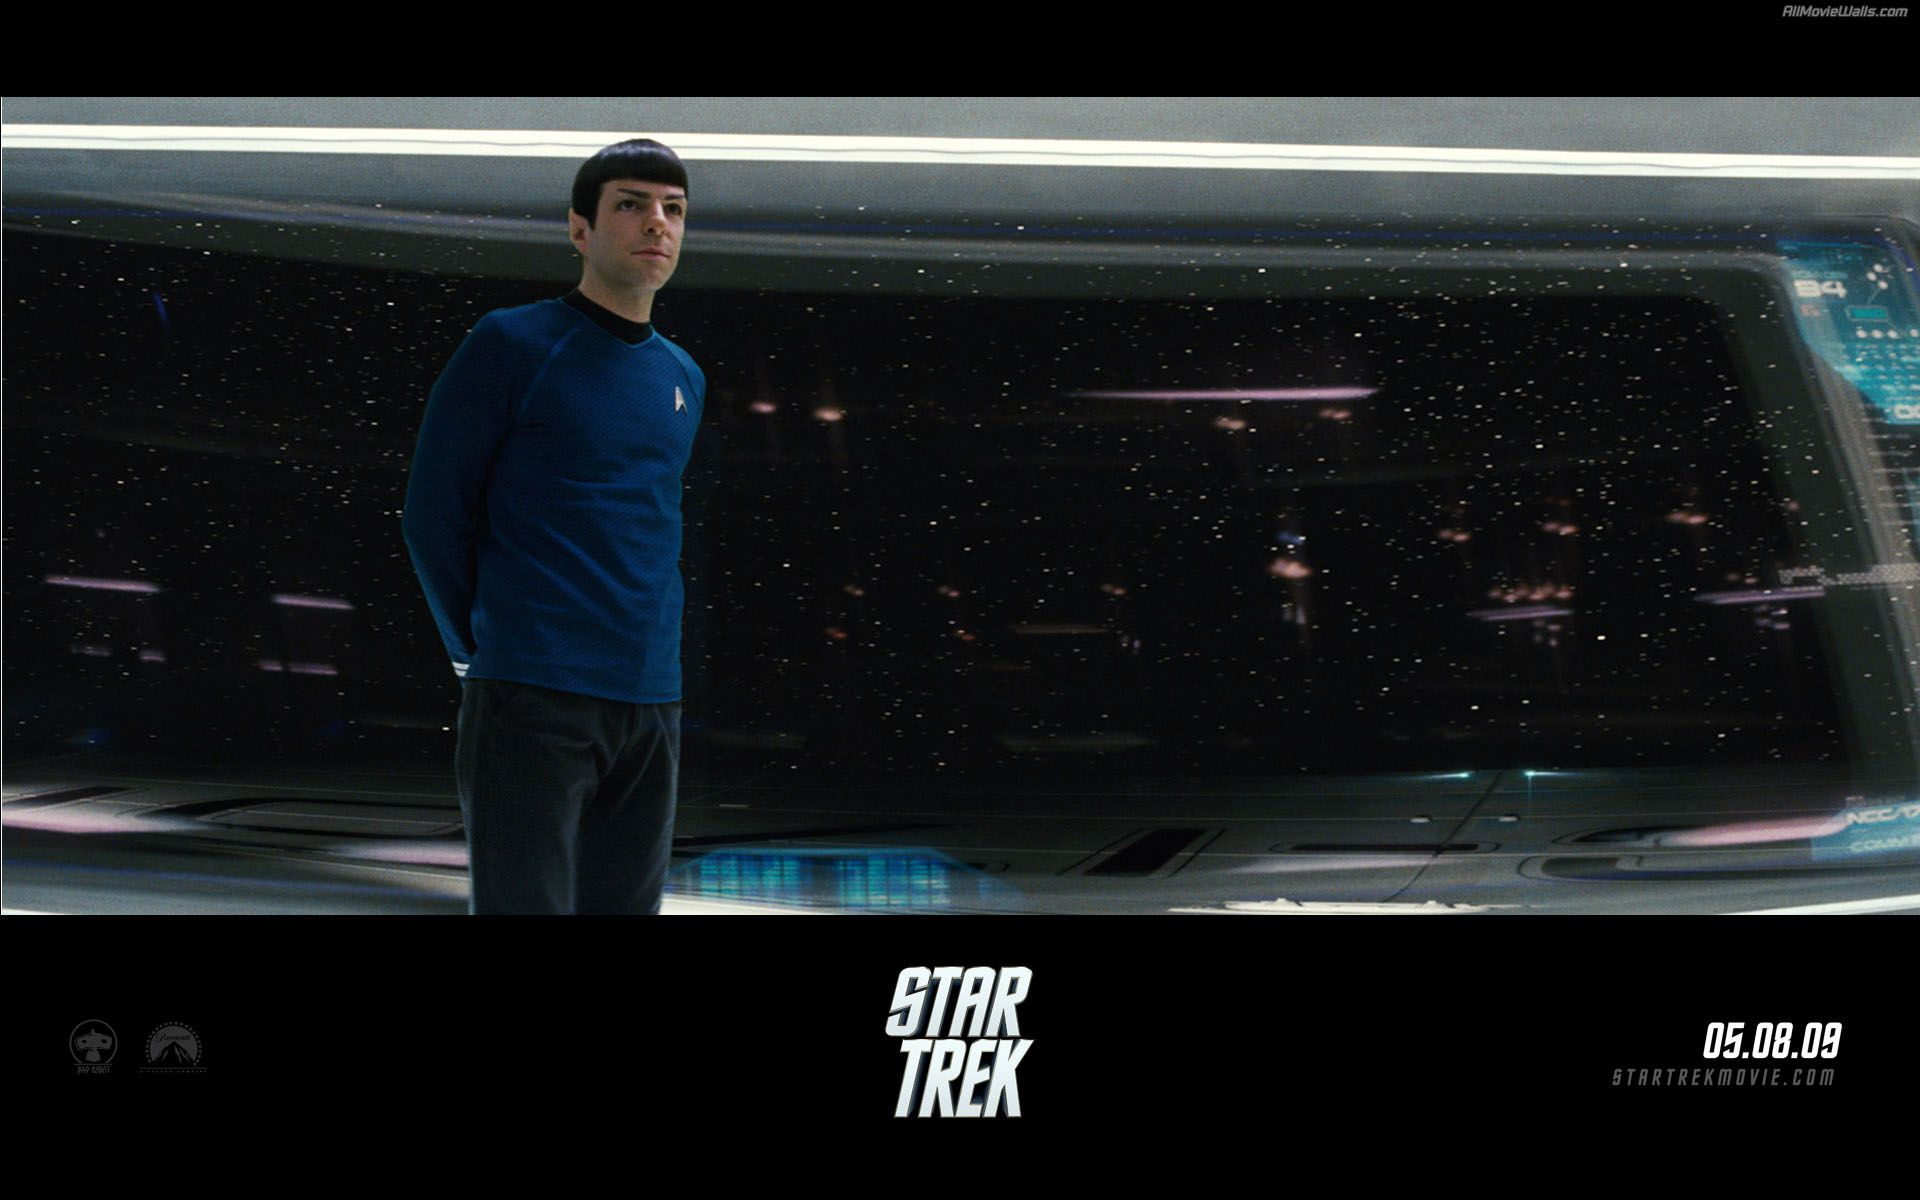 Spock Standing In Starship Bridge Poster Wallpaper 1920x1200